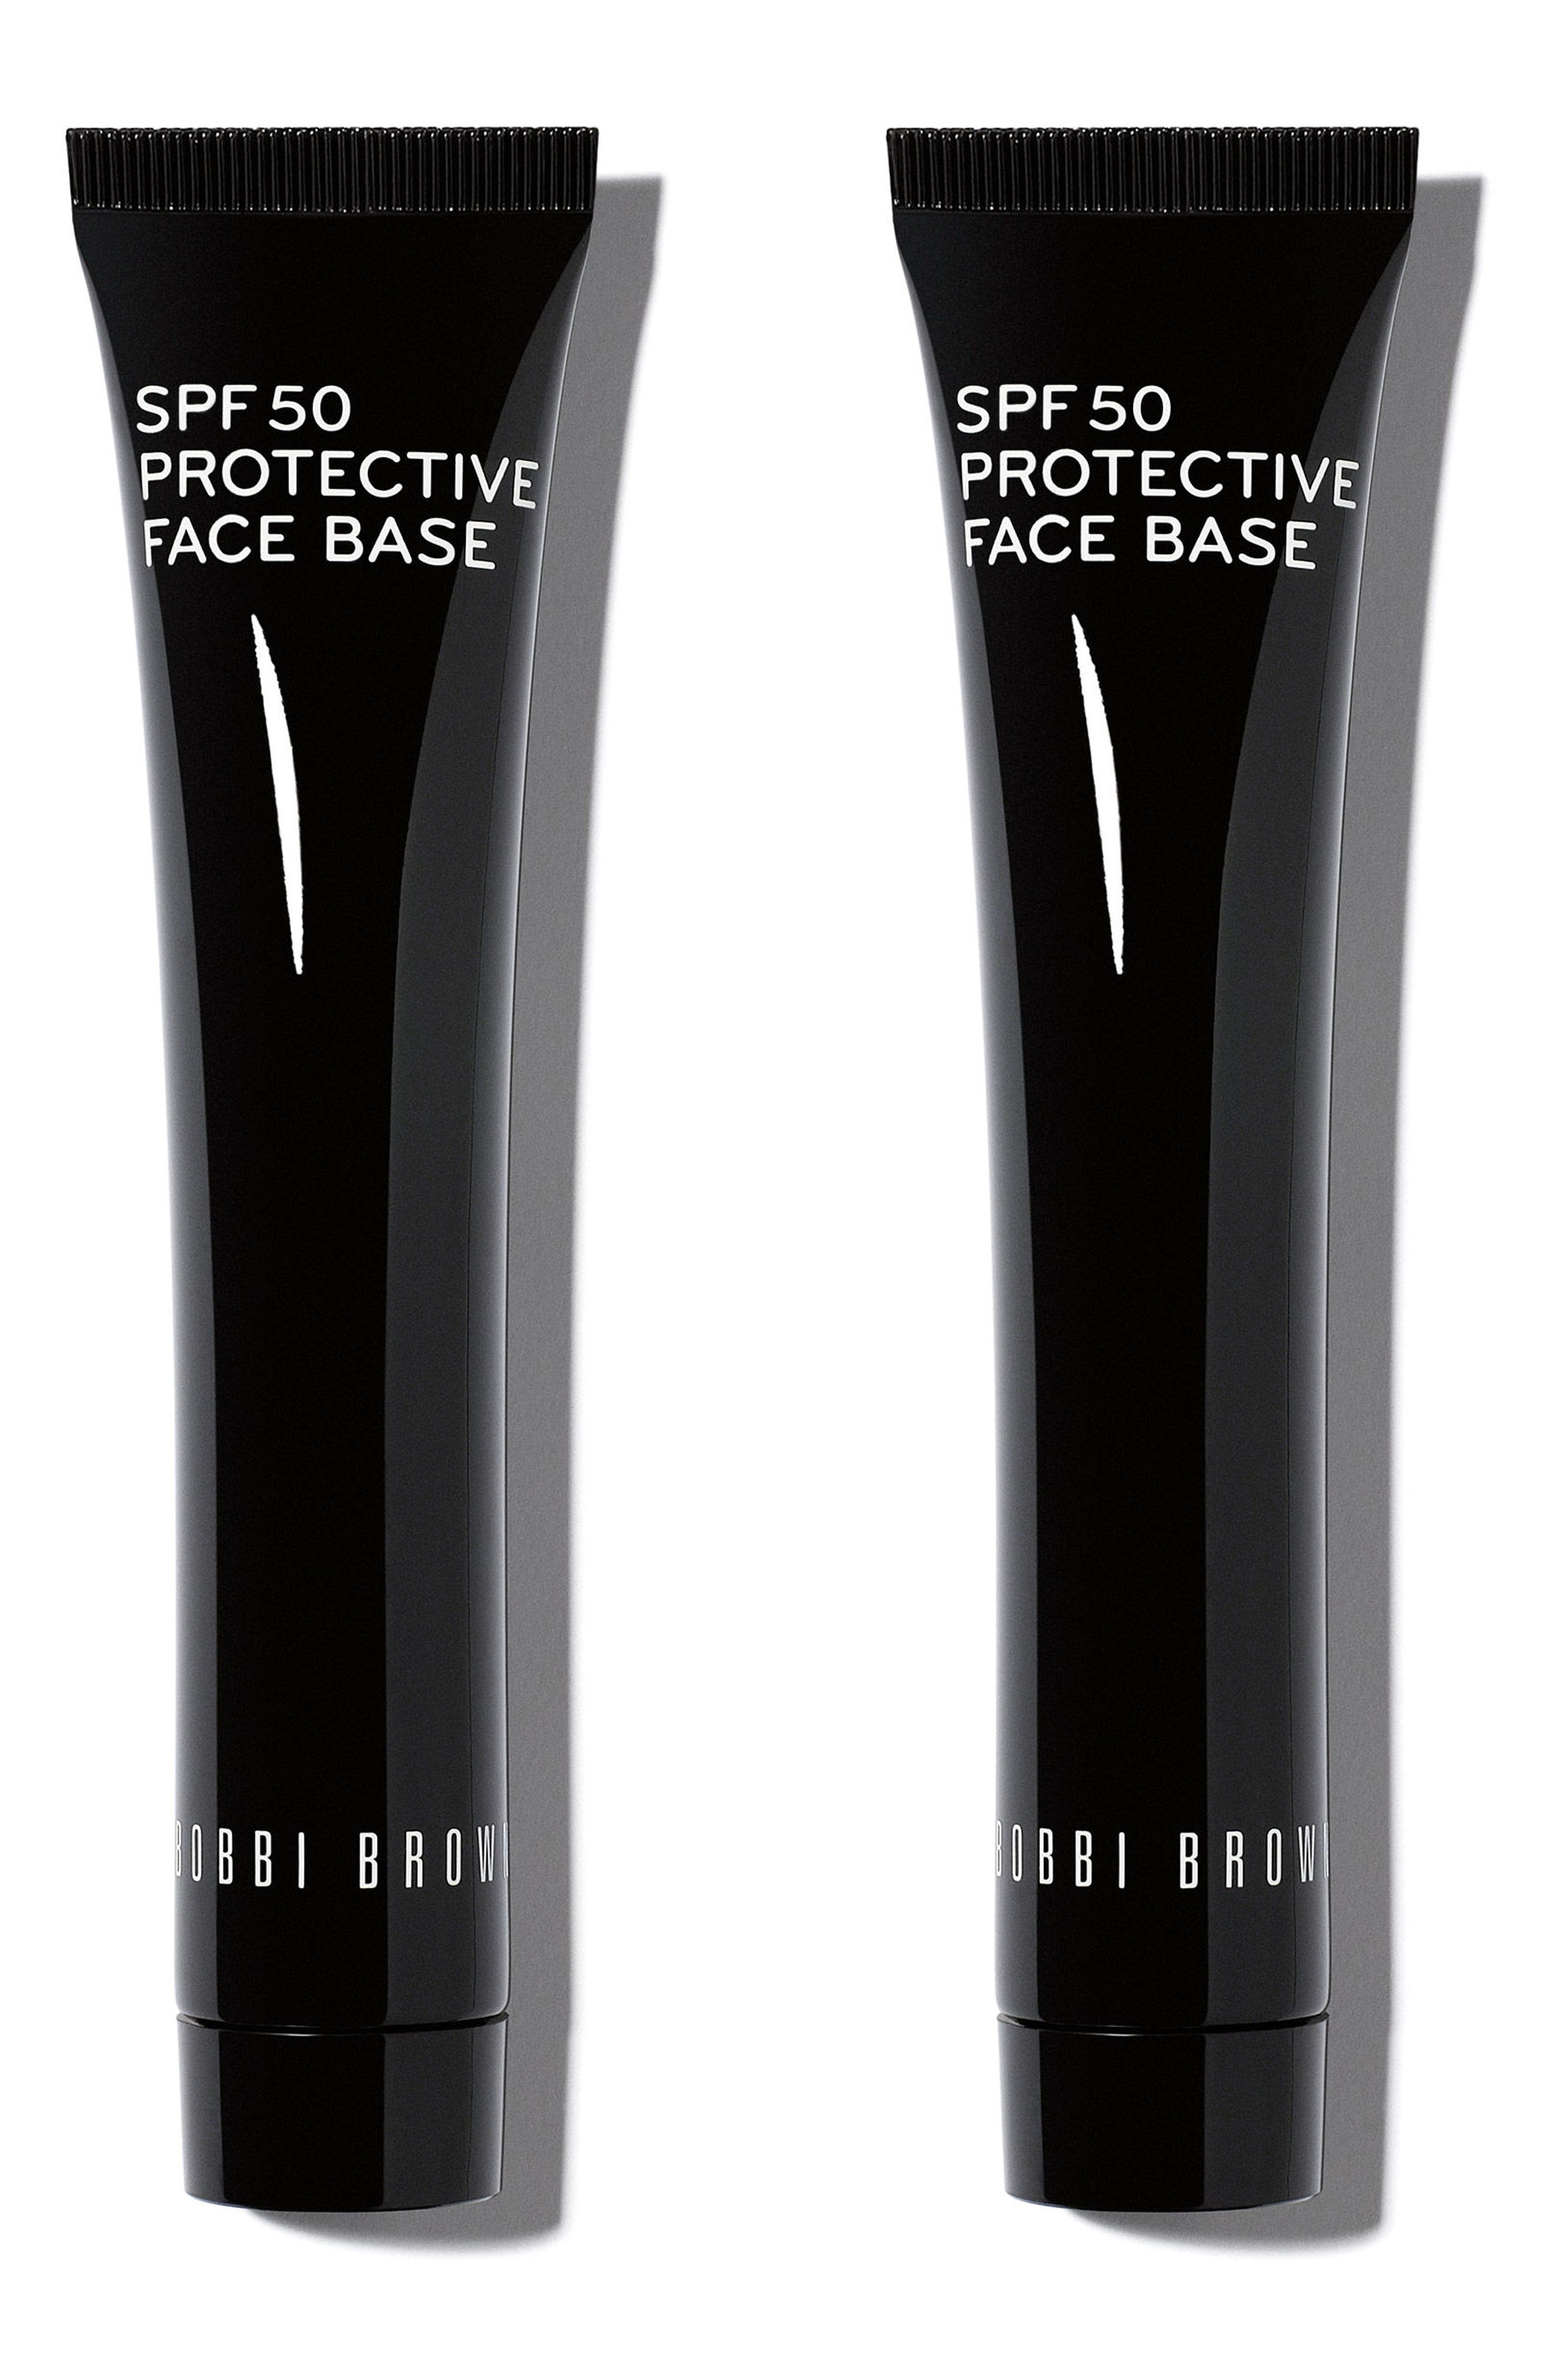 Alternate Image 1 Selected - Bobbi Brown Protective Face Base SPF 50 Duo (Nordstrom Exclusive) ($86 Value)